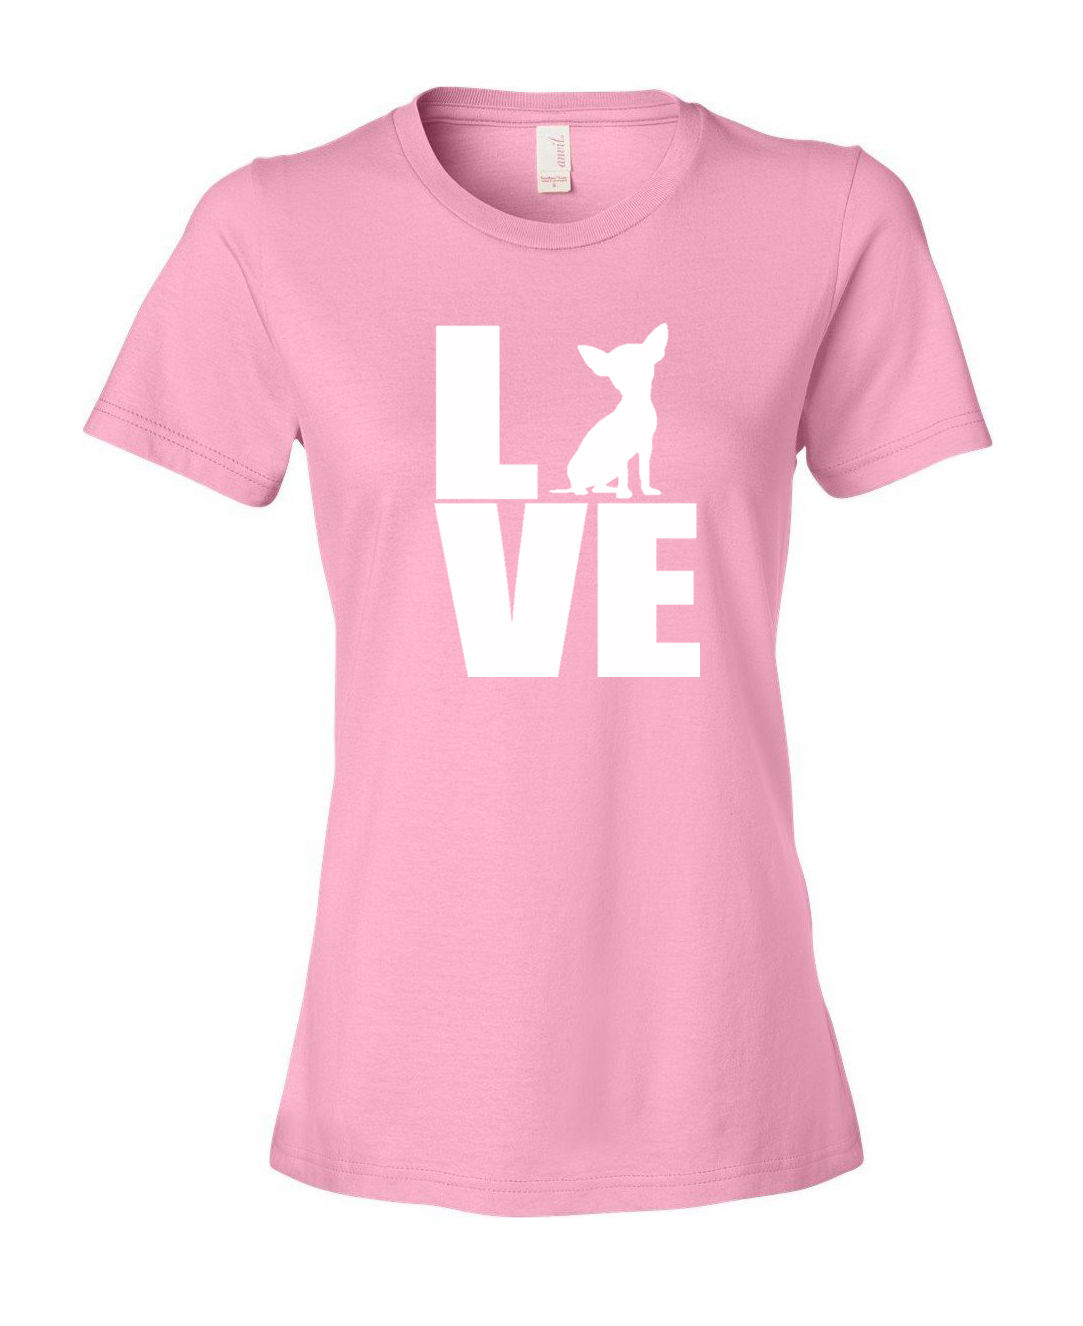 new fashion cool casual t shirts oneck women short sleeve